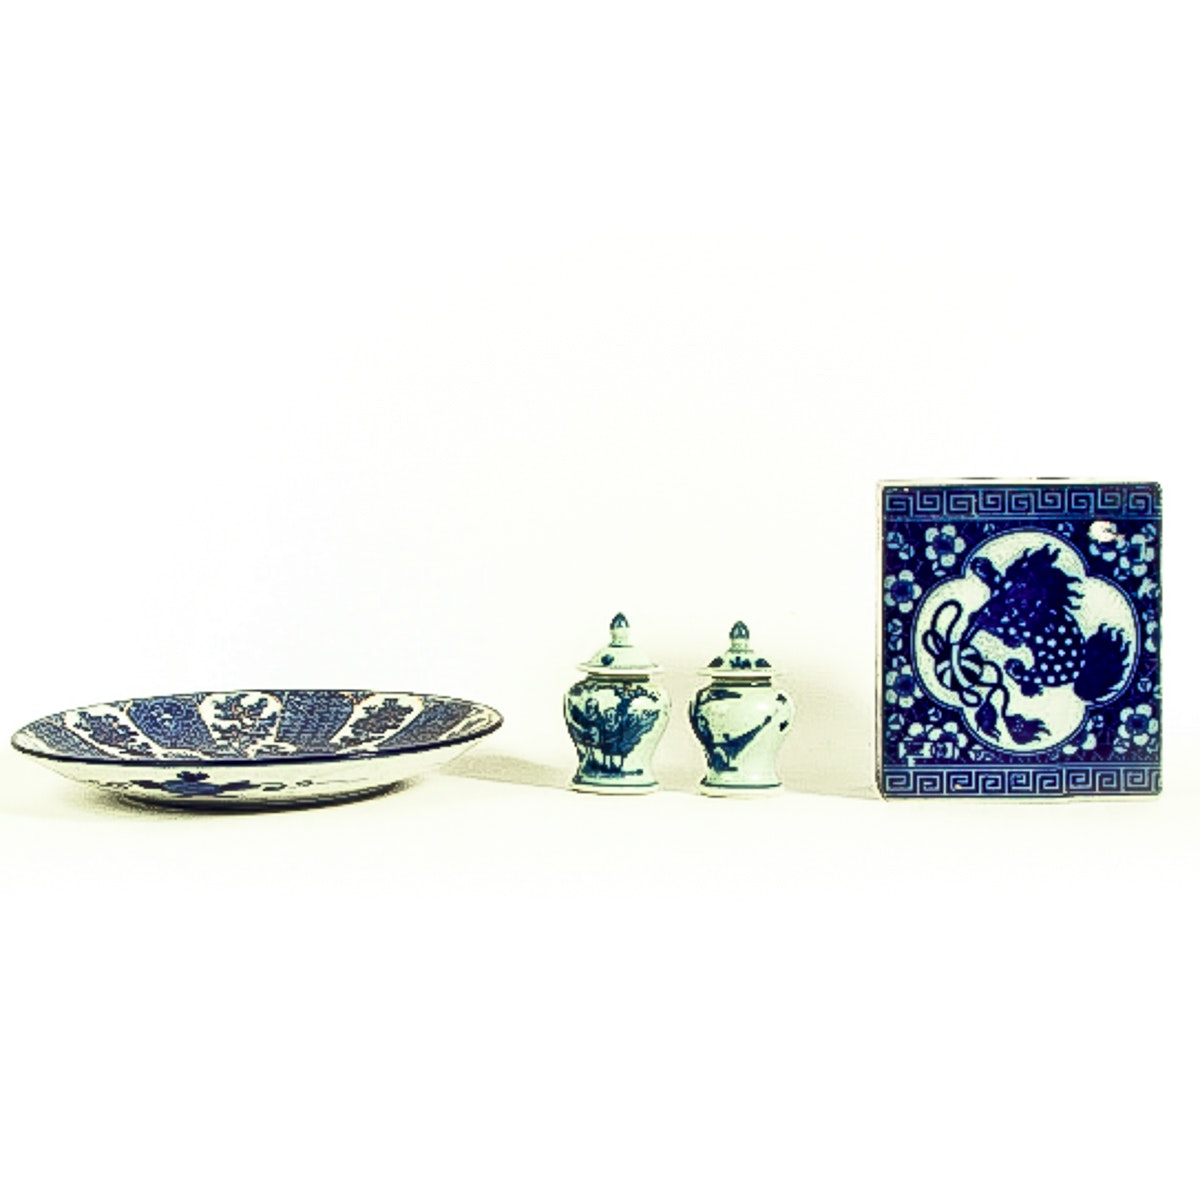 Collection of Vintage Asian Blue and White Ceramic Decorative Items